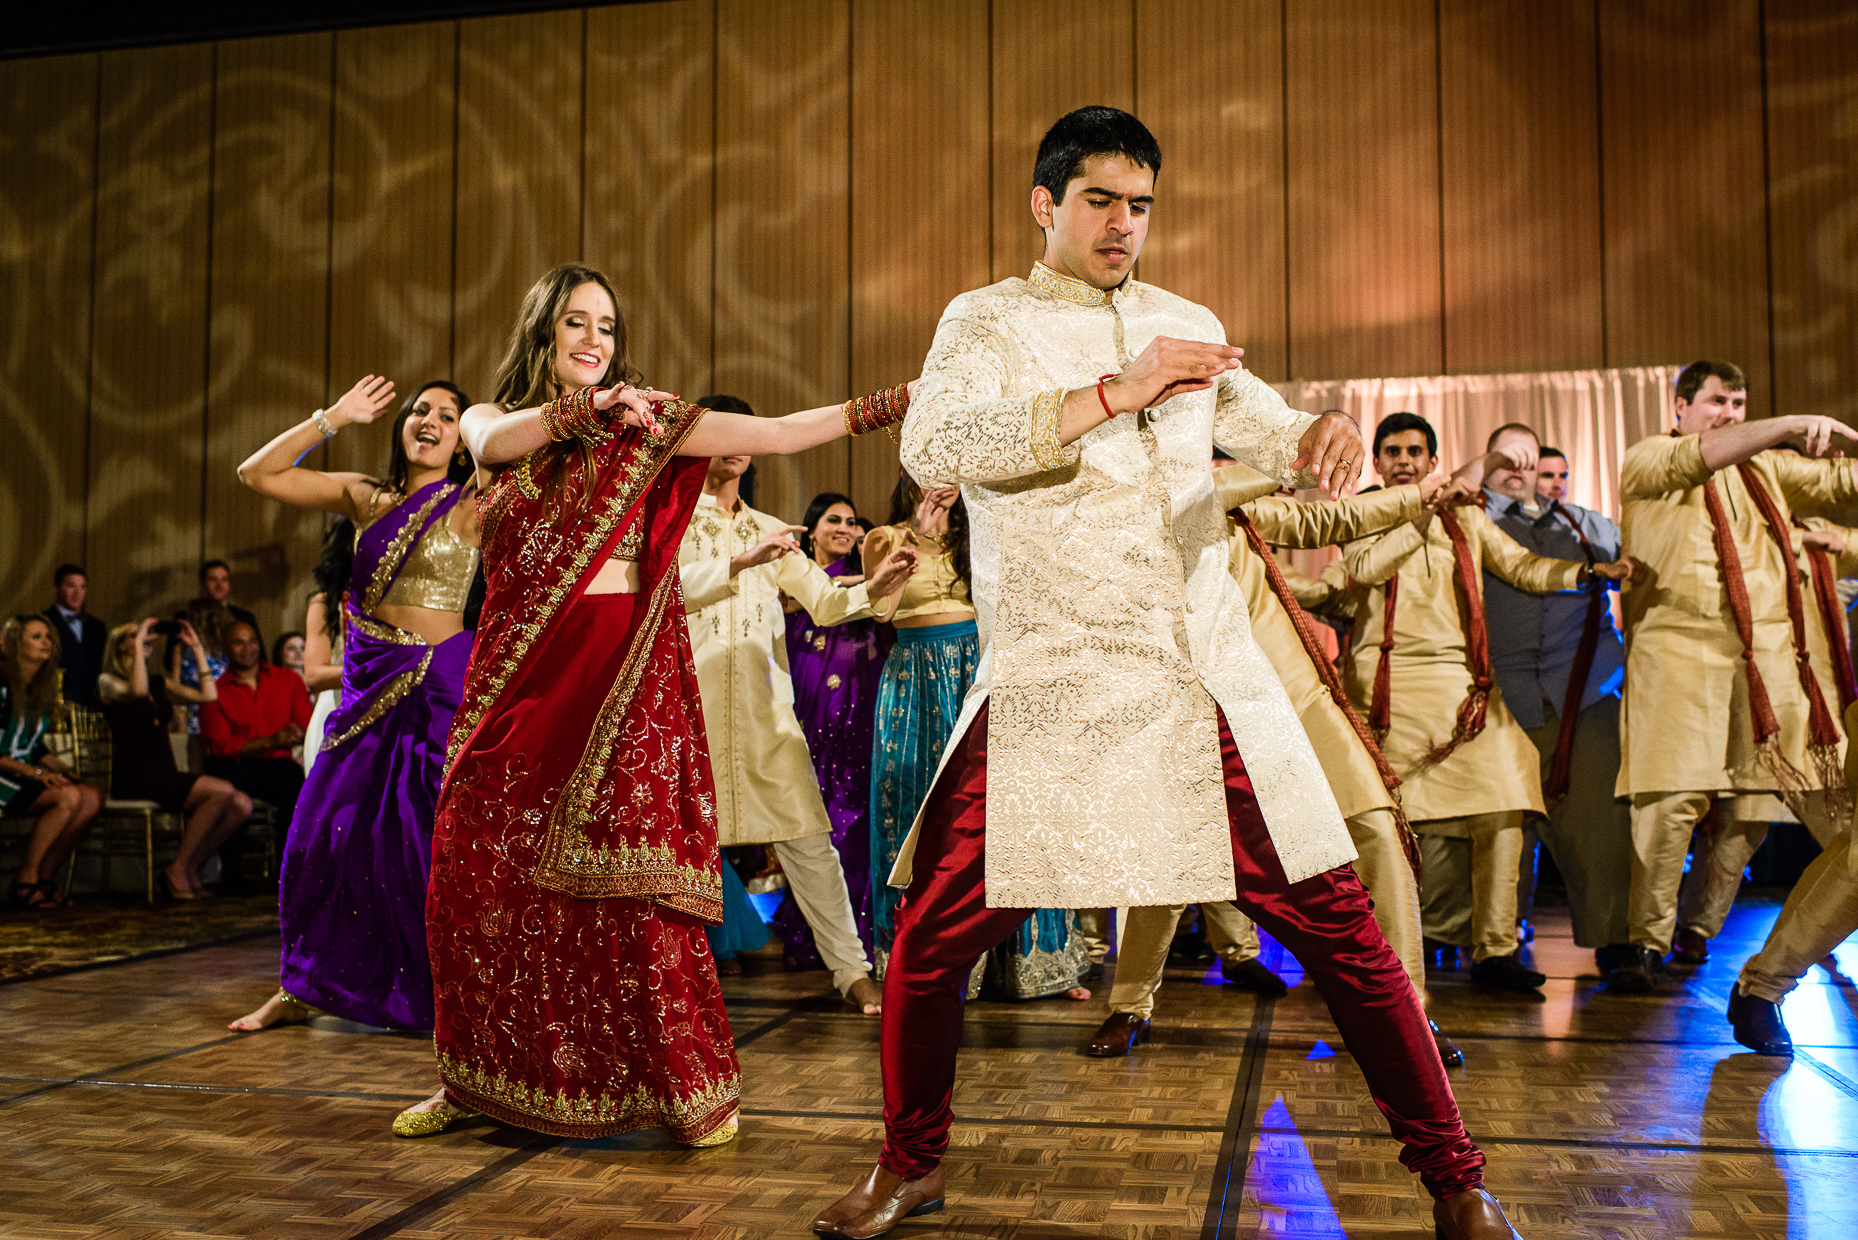 Austin-indian-dance-Wedding-Photographer-Lost-Pines-Hyatt